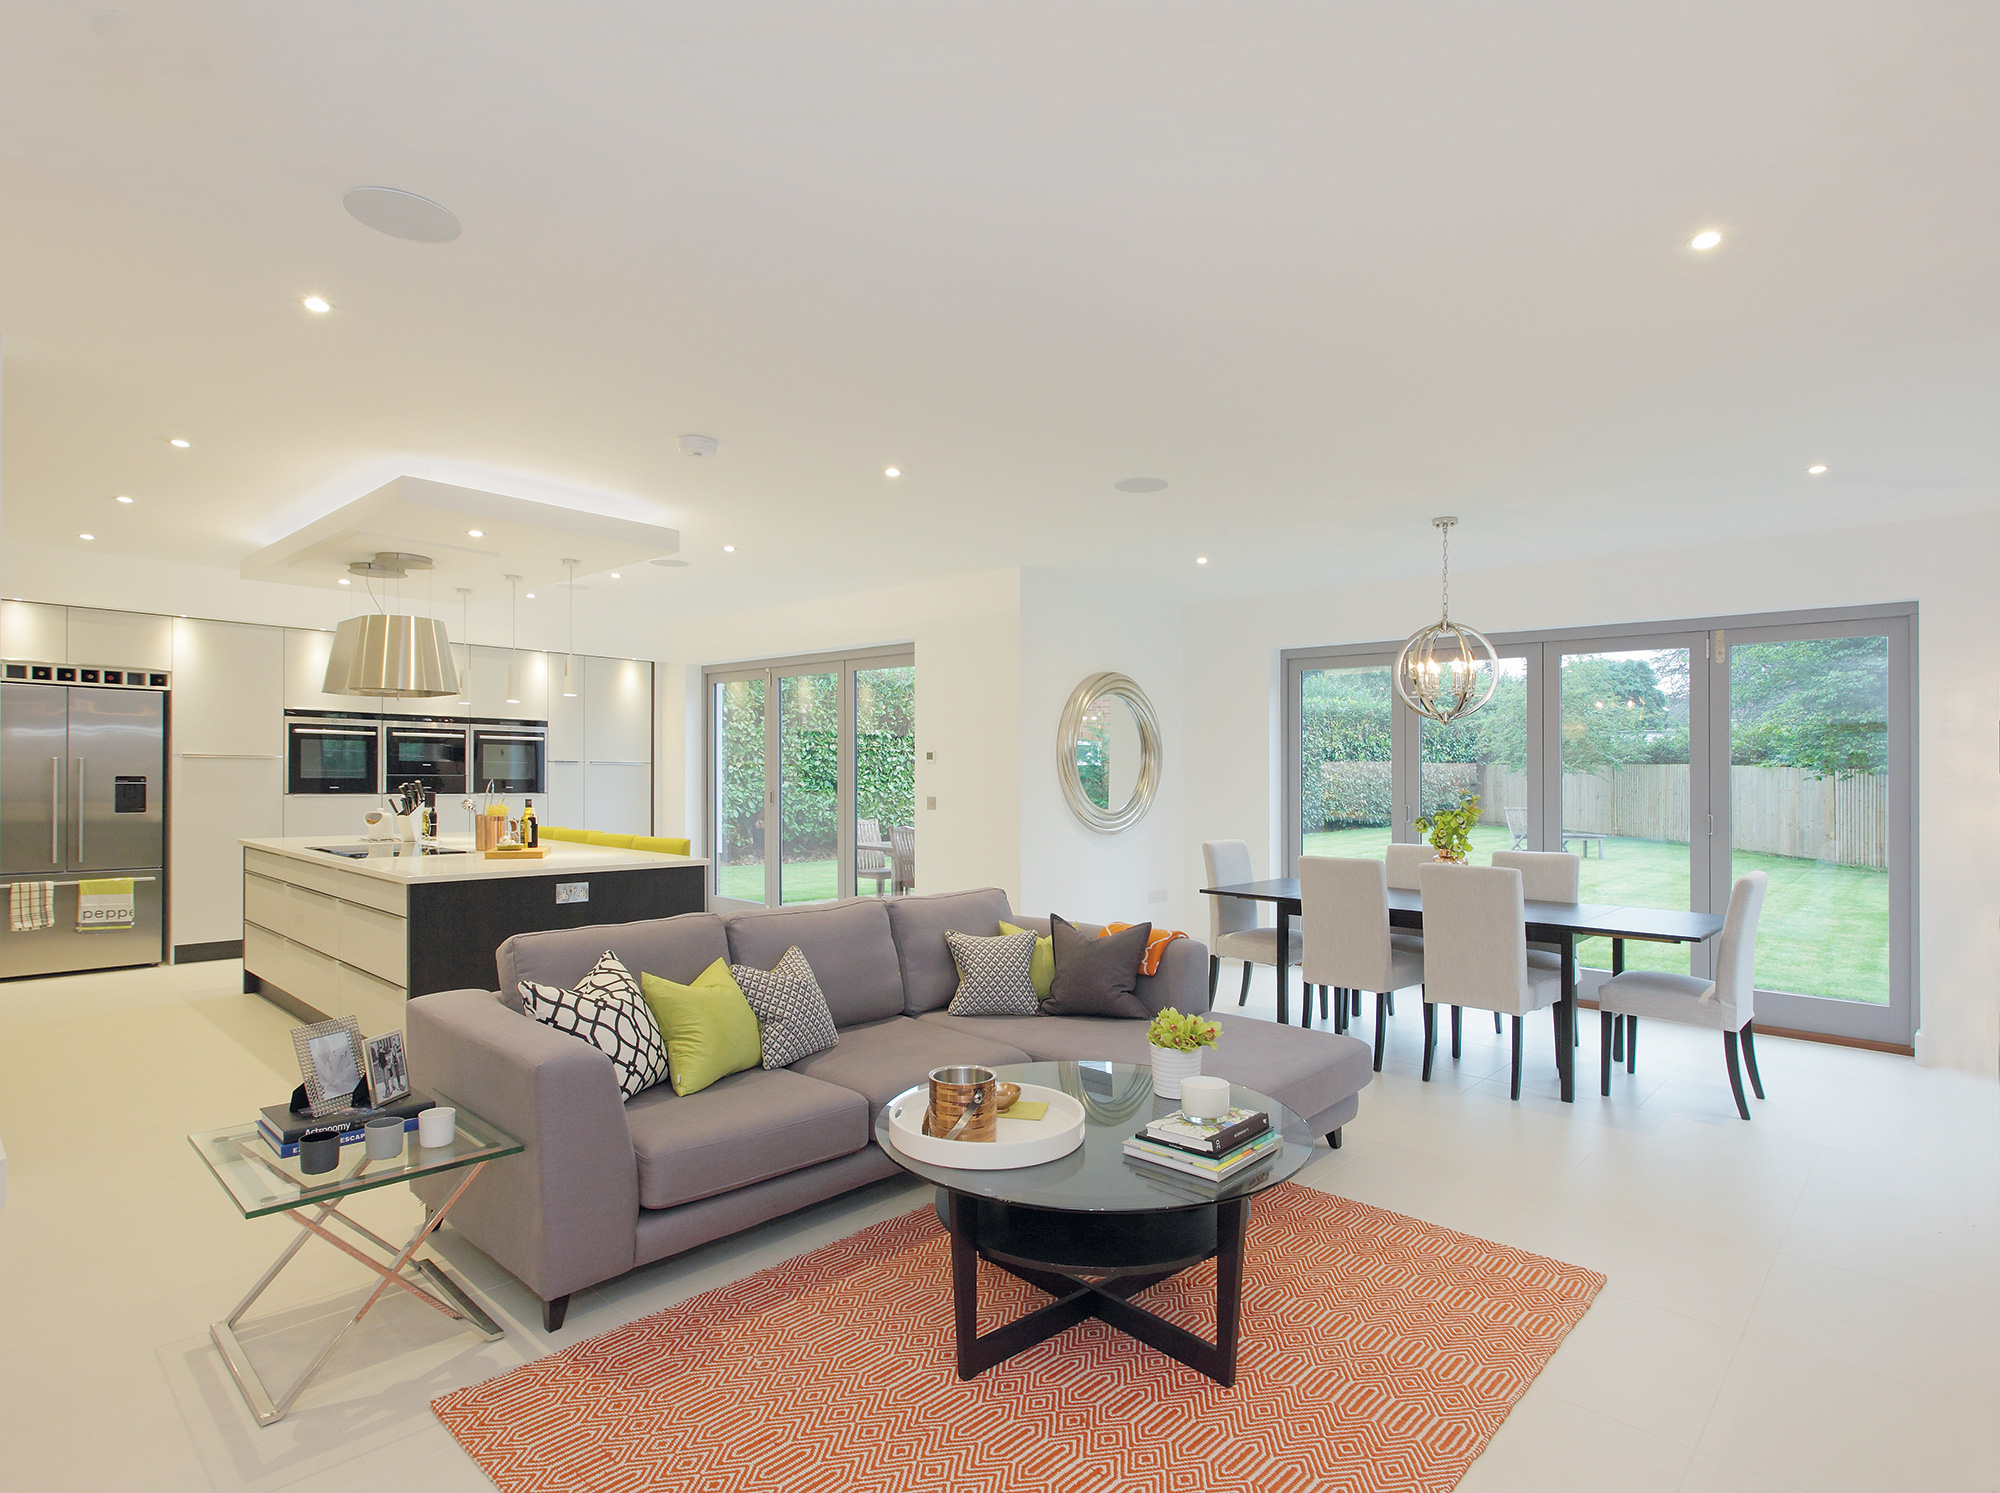 The Pros and Cons of OpenPlan Home Design  Build It